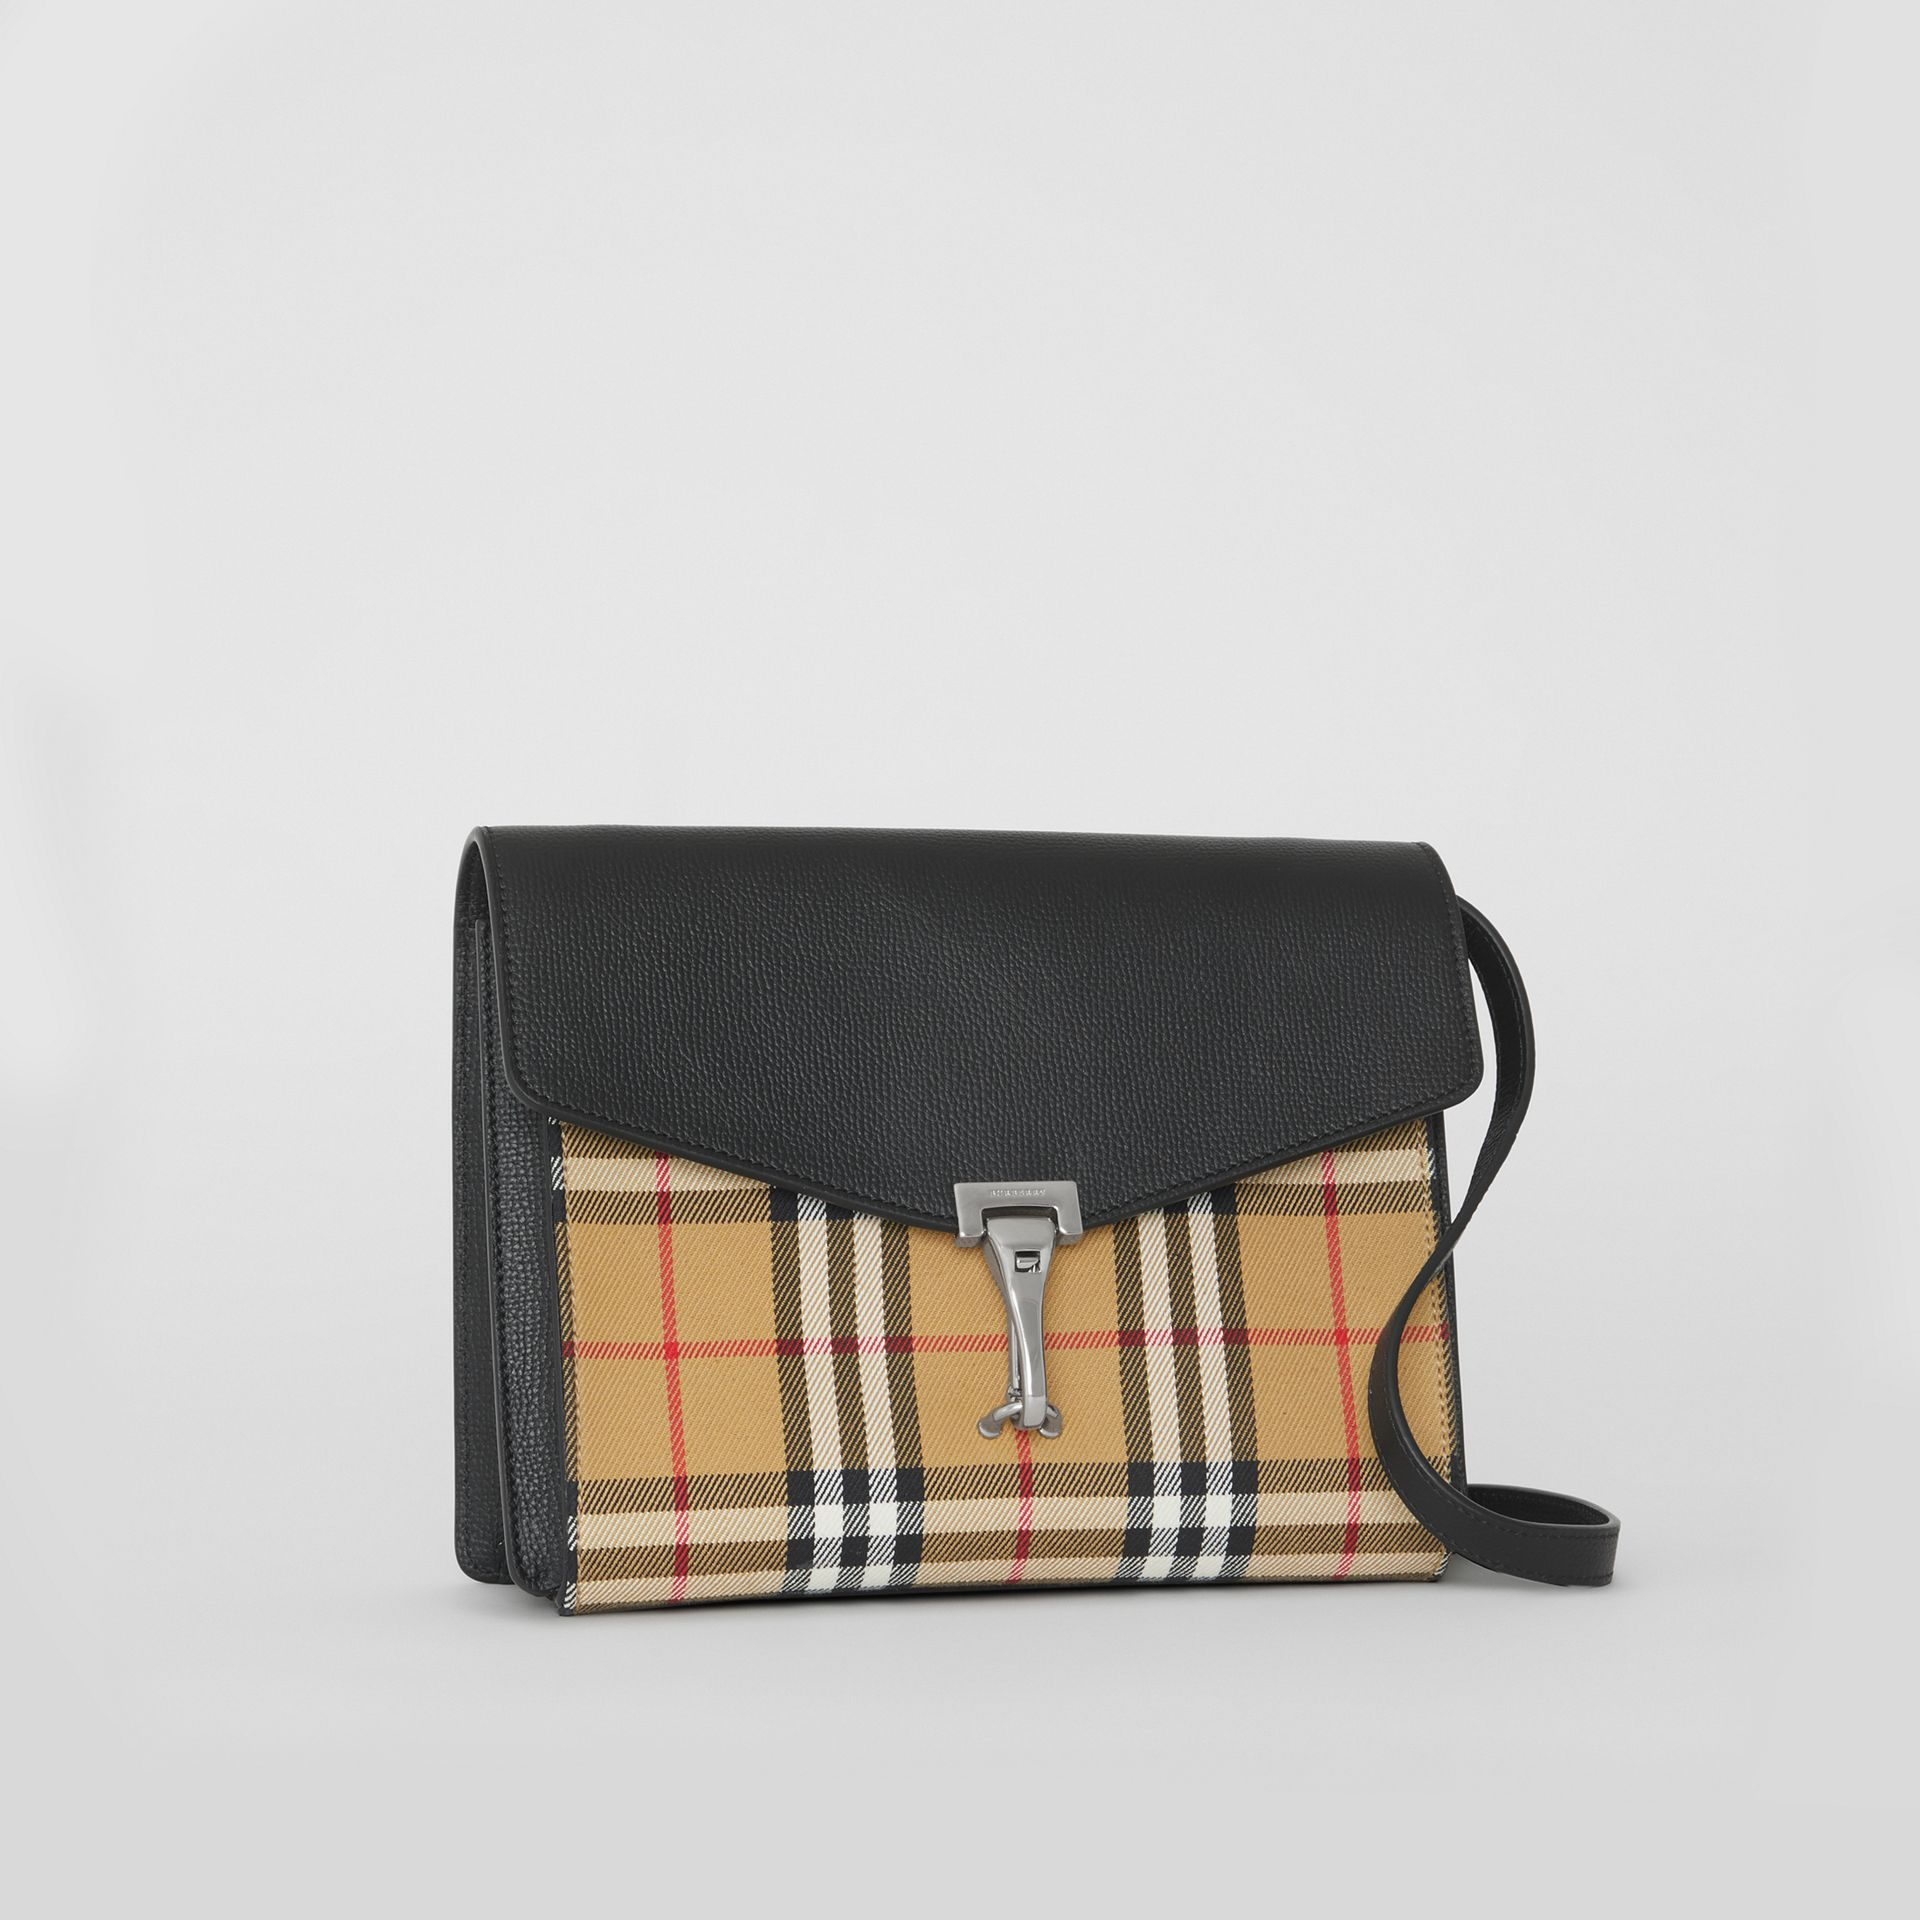 Small Vintage Check and Leather Crossbody Bag in Black - Women | Burberry Australia - gallery image 6